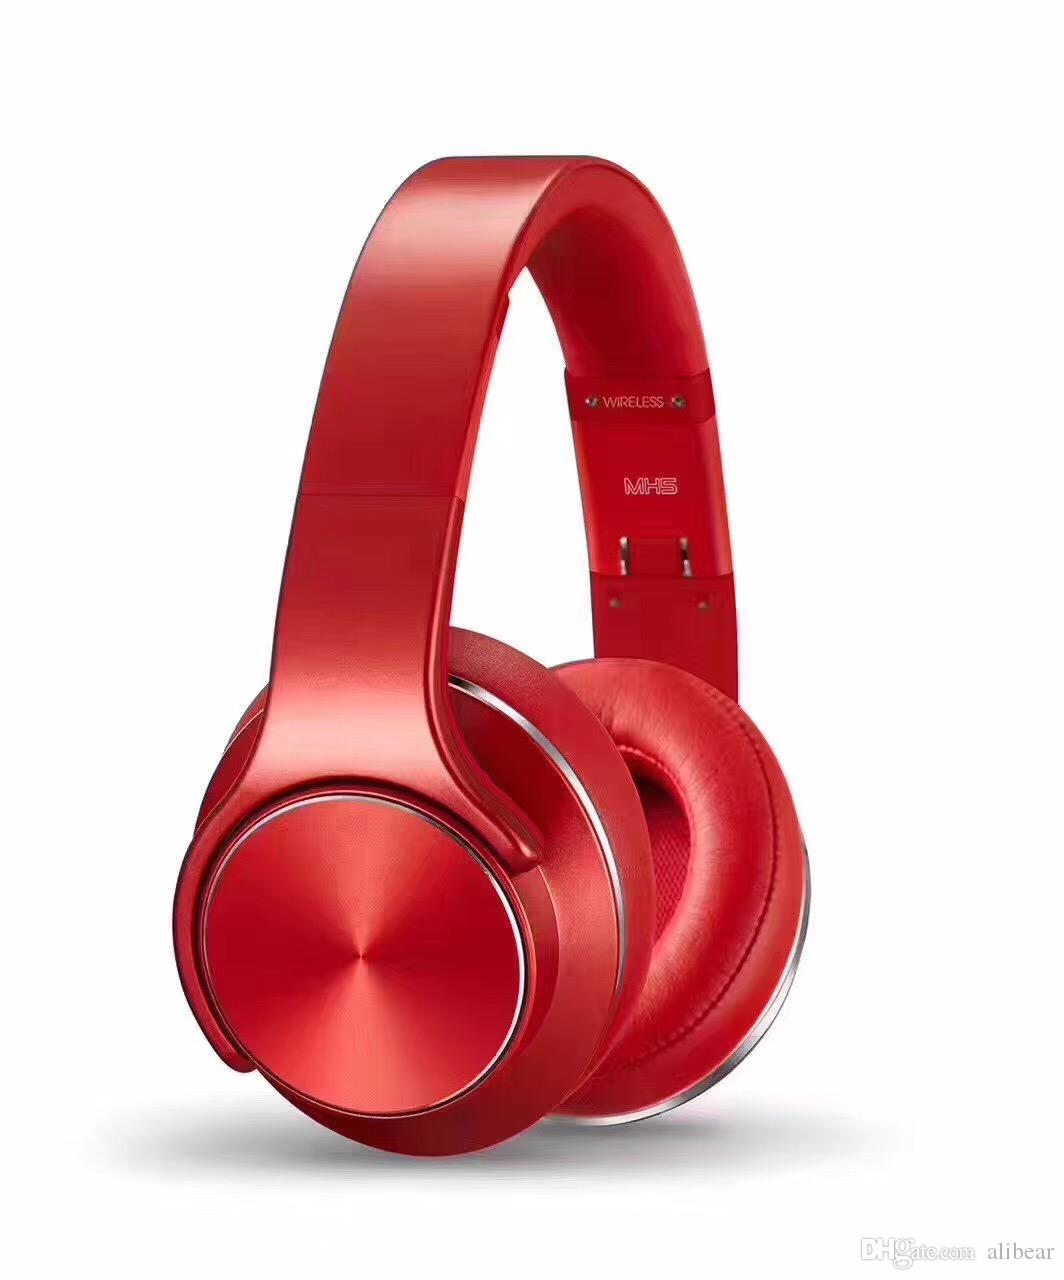 Sodo Mh5 Bluetooth Headphone Twist Out Speaker Bluetooth 4: SODO MH5 Bluetooth 4.2 Wireless Headphone & Twist-out